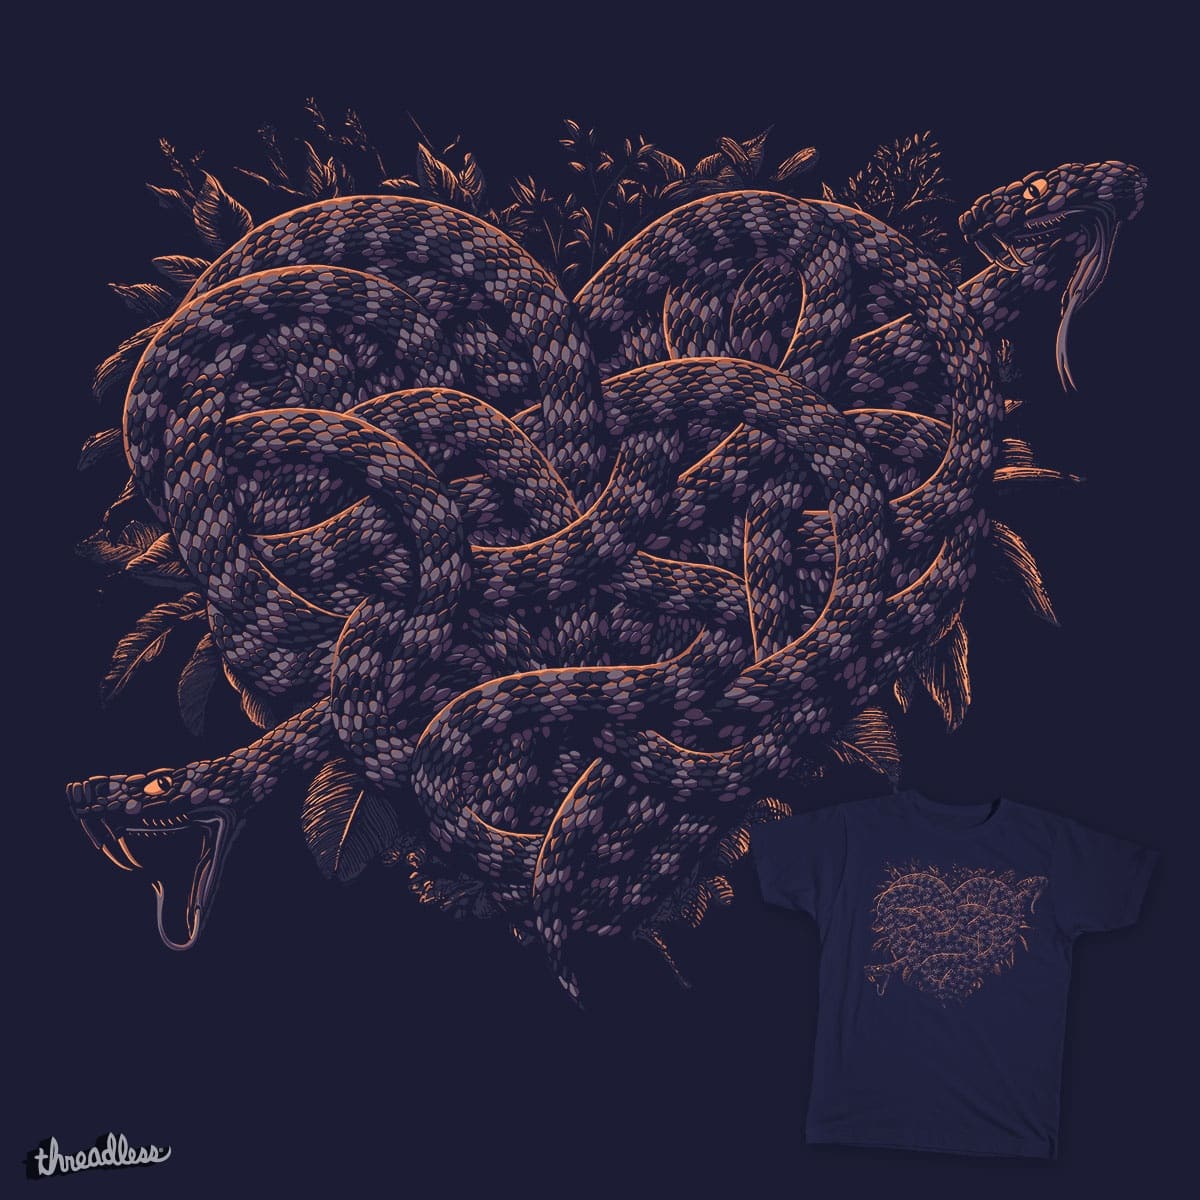 Love struck by v_calahan on Threadless